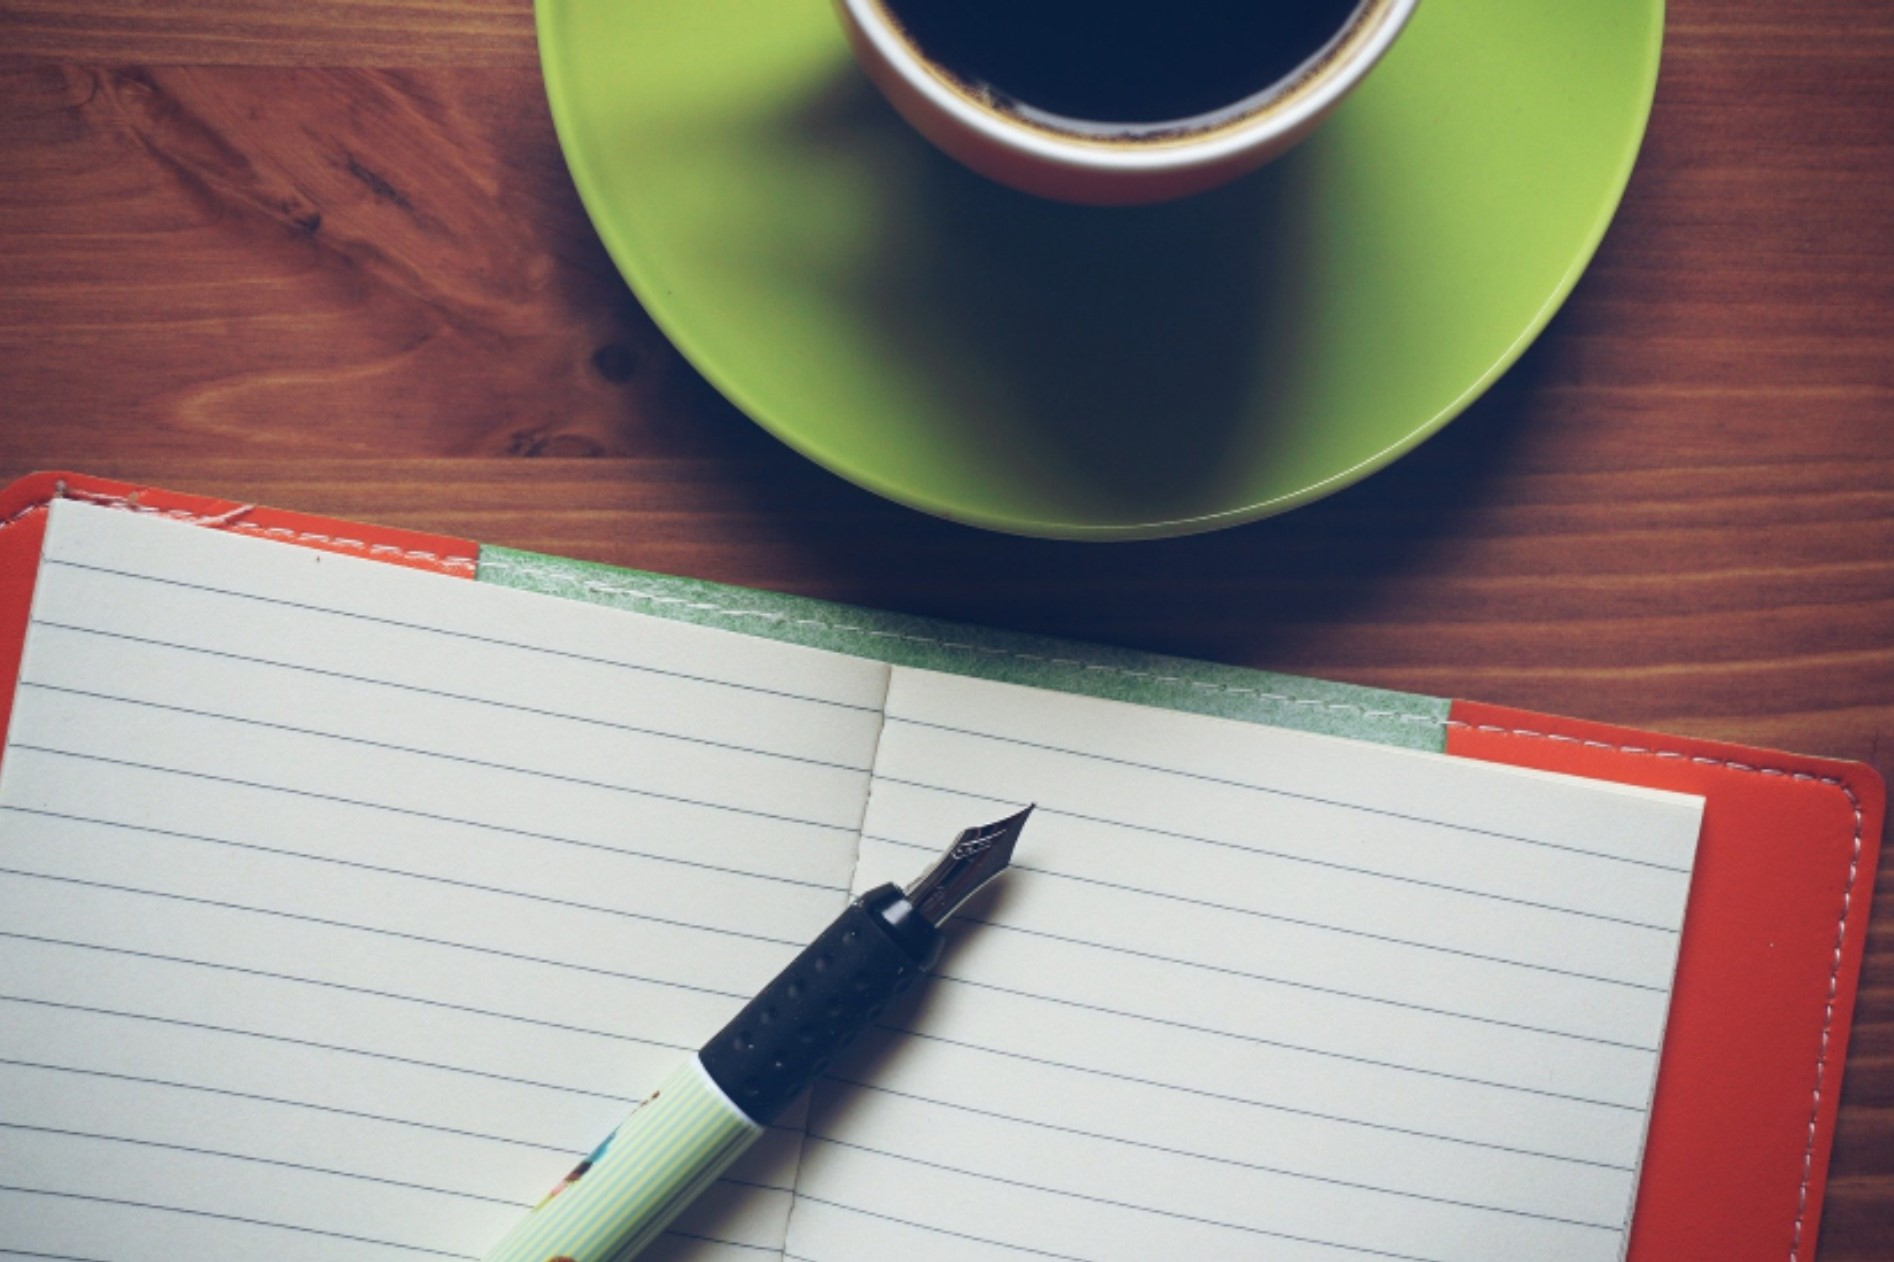 Coffee cup next to a journal and pen